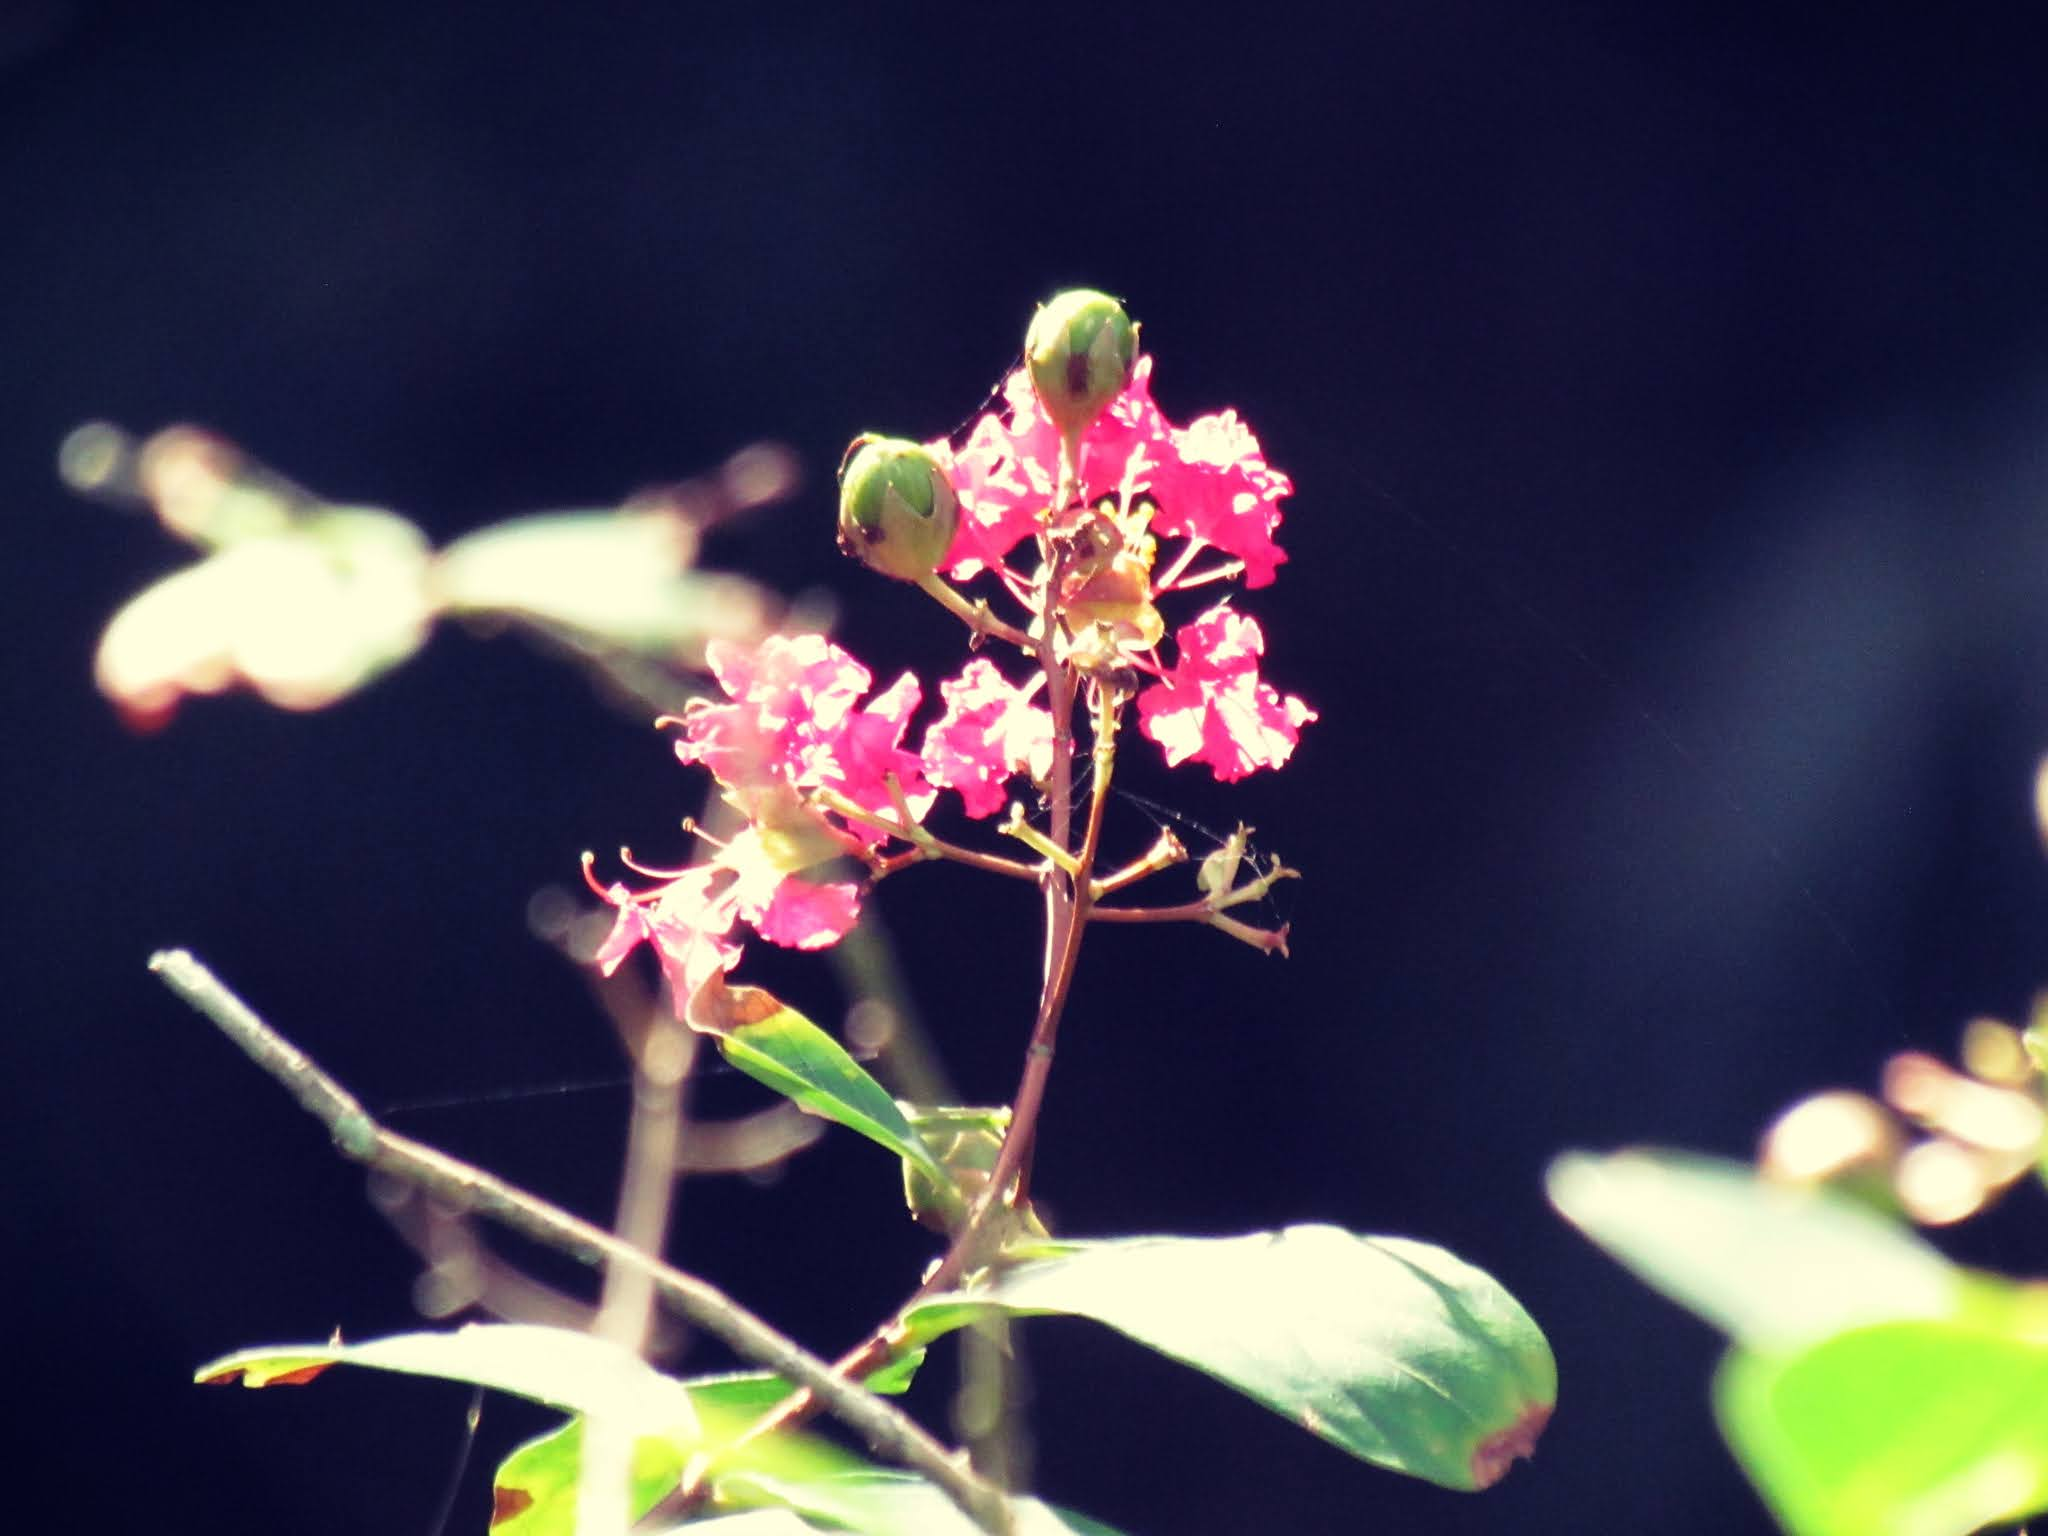 A pink flower bud in summer, black background in a dark fairy forest, and green plant stems and biology of wildlife